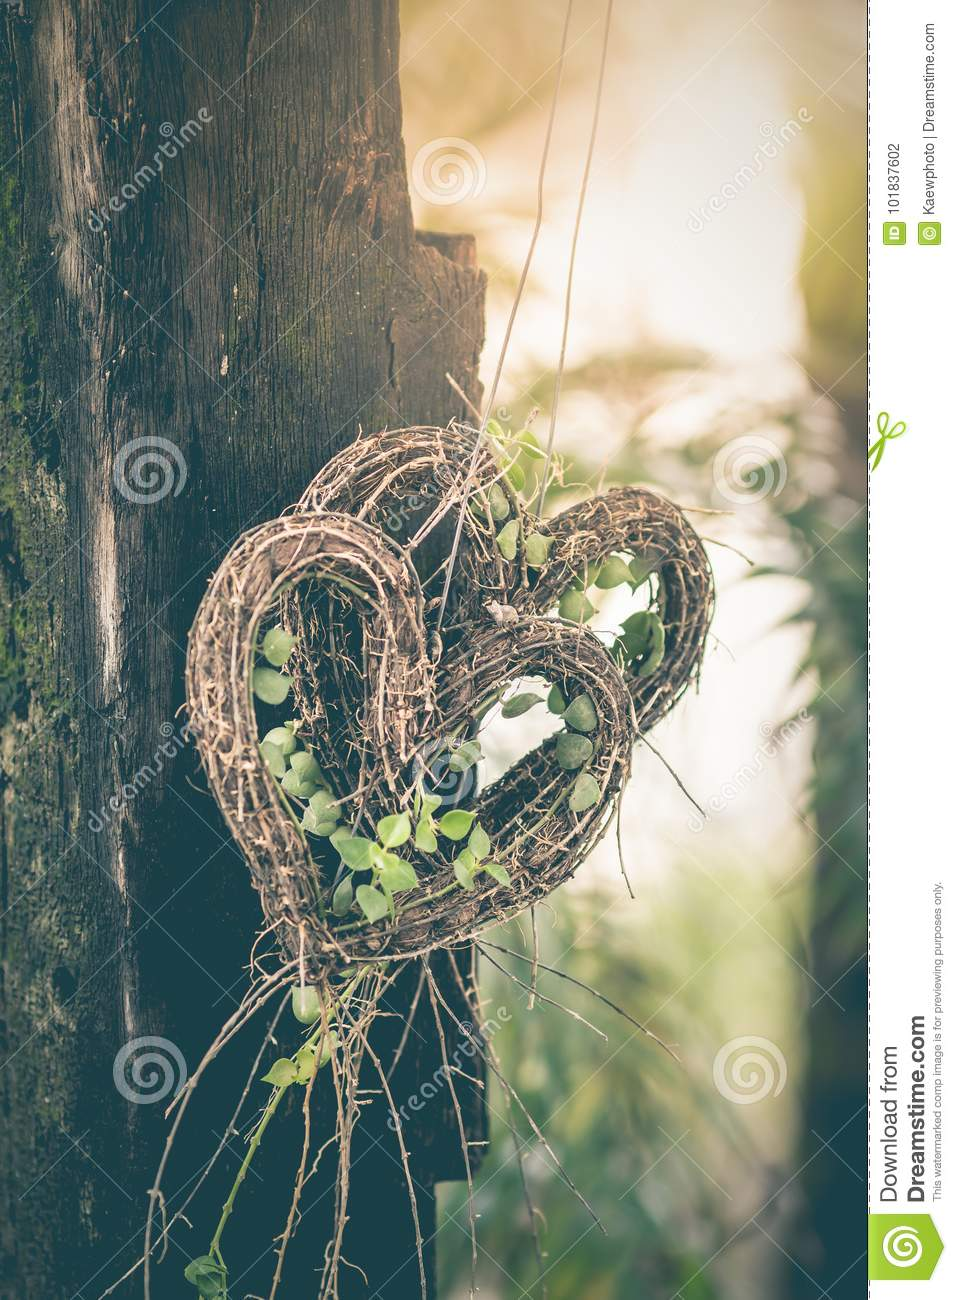 Heart Shaped Tree Is A Symbol Of Love As A Background Image Stock